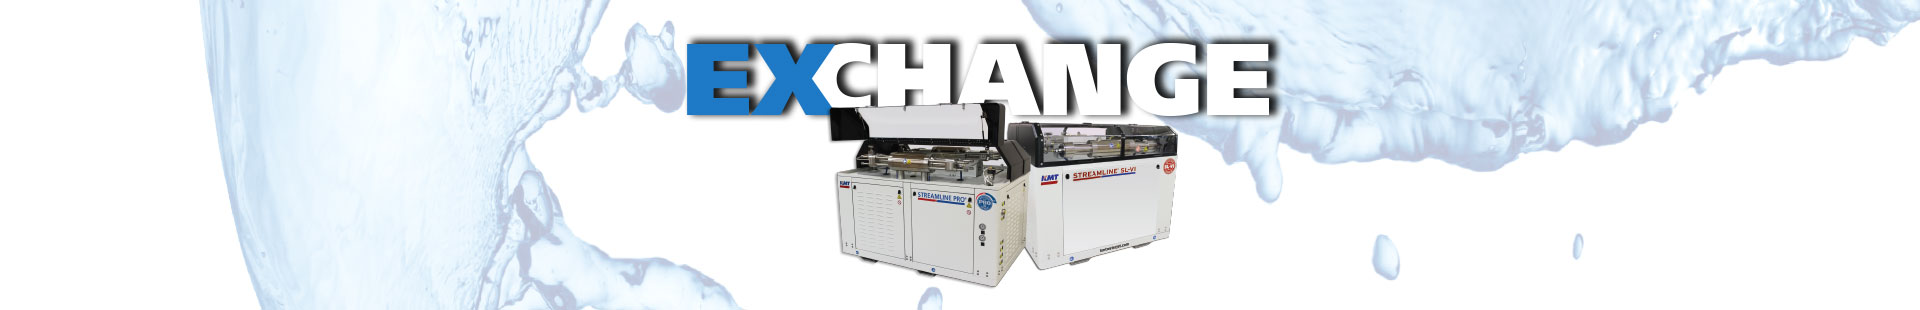 KMT-WATERJET-2021-NEW-YEAR-TRADE-IN-PUMP-BANNER